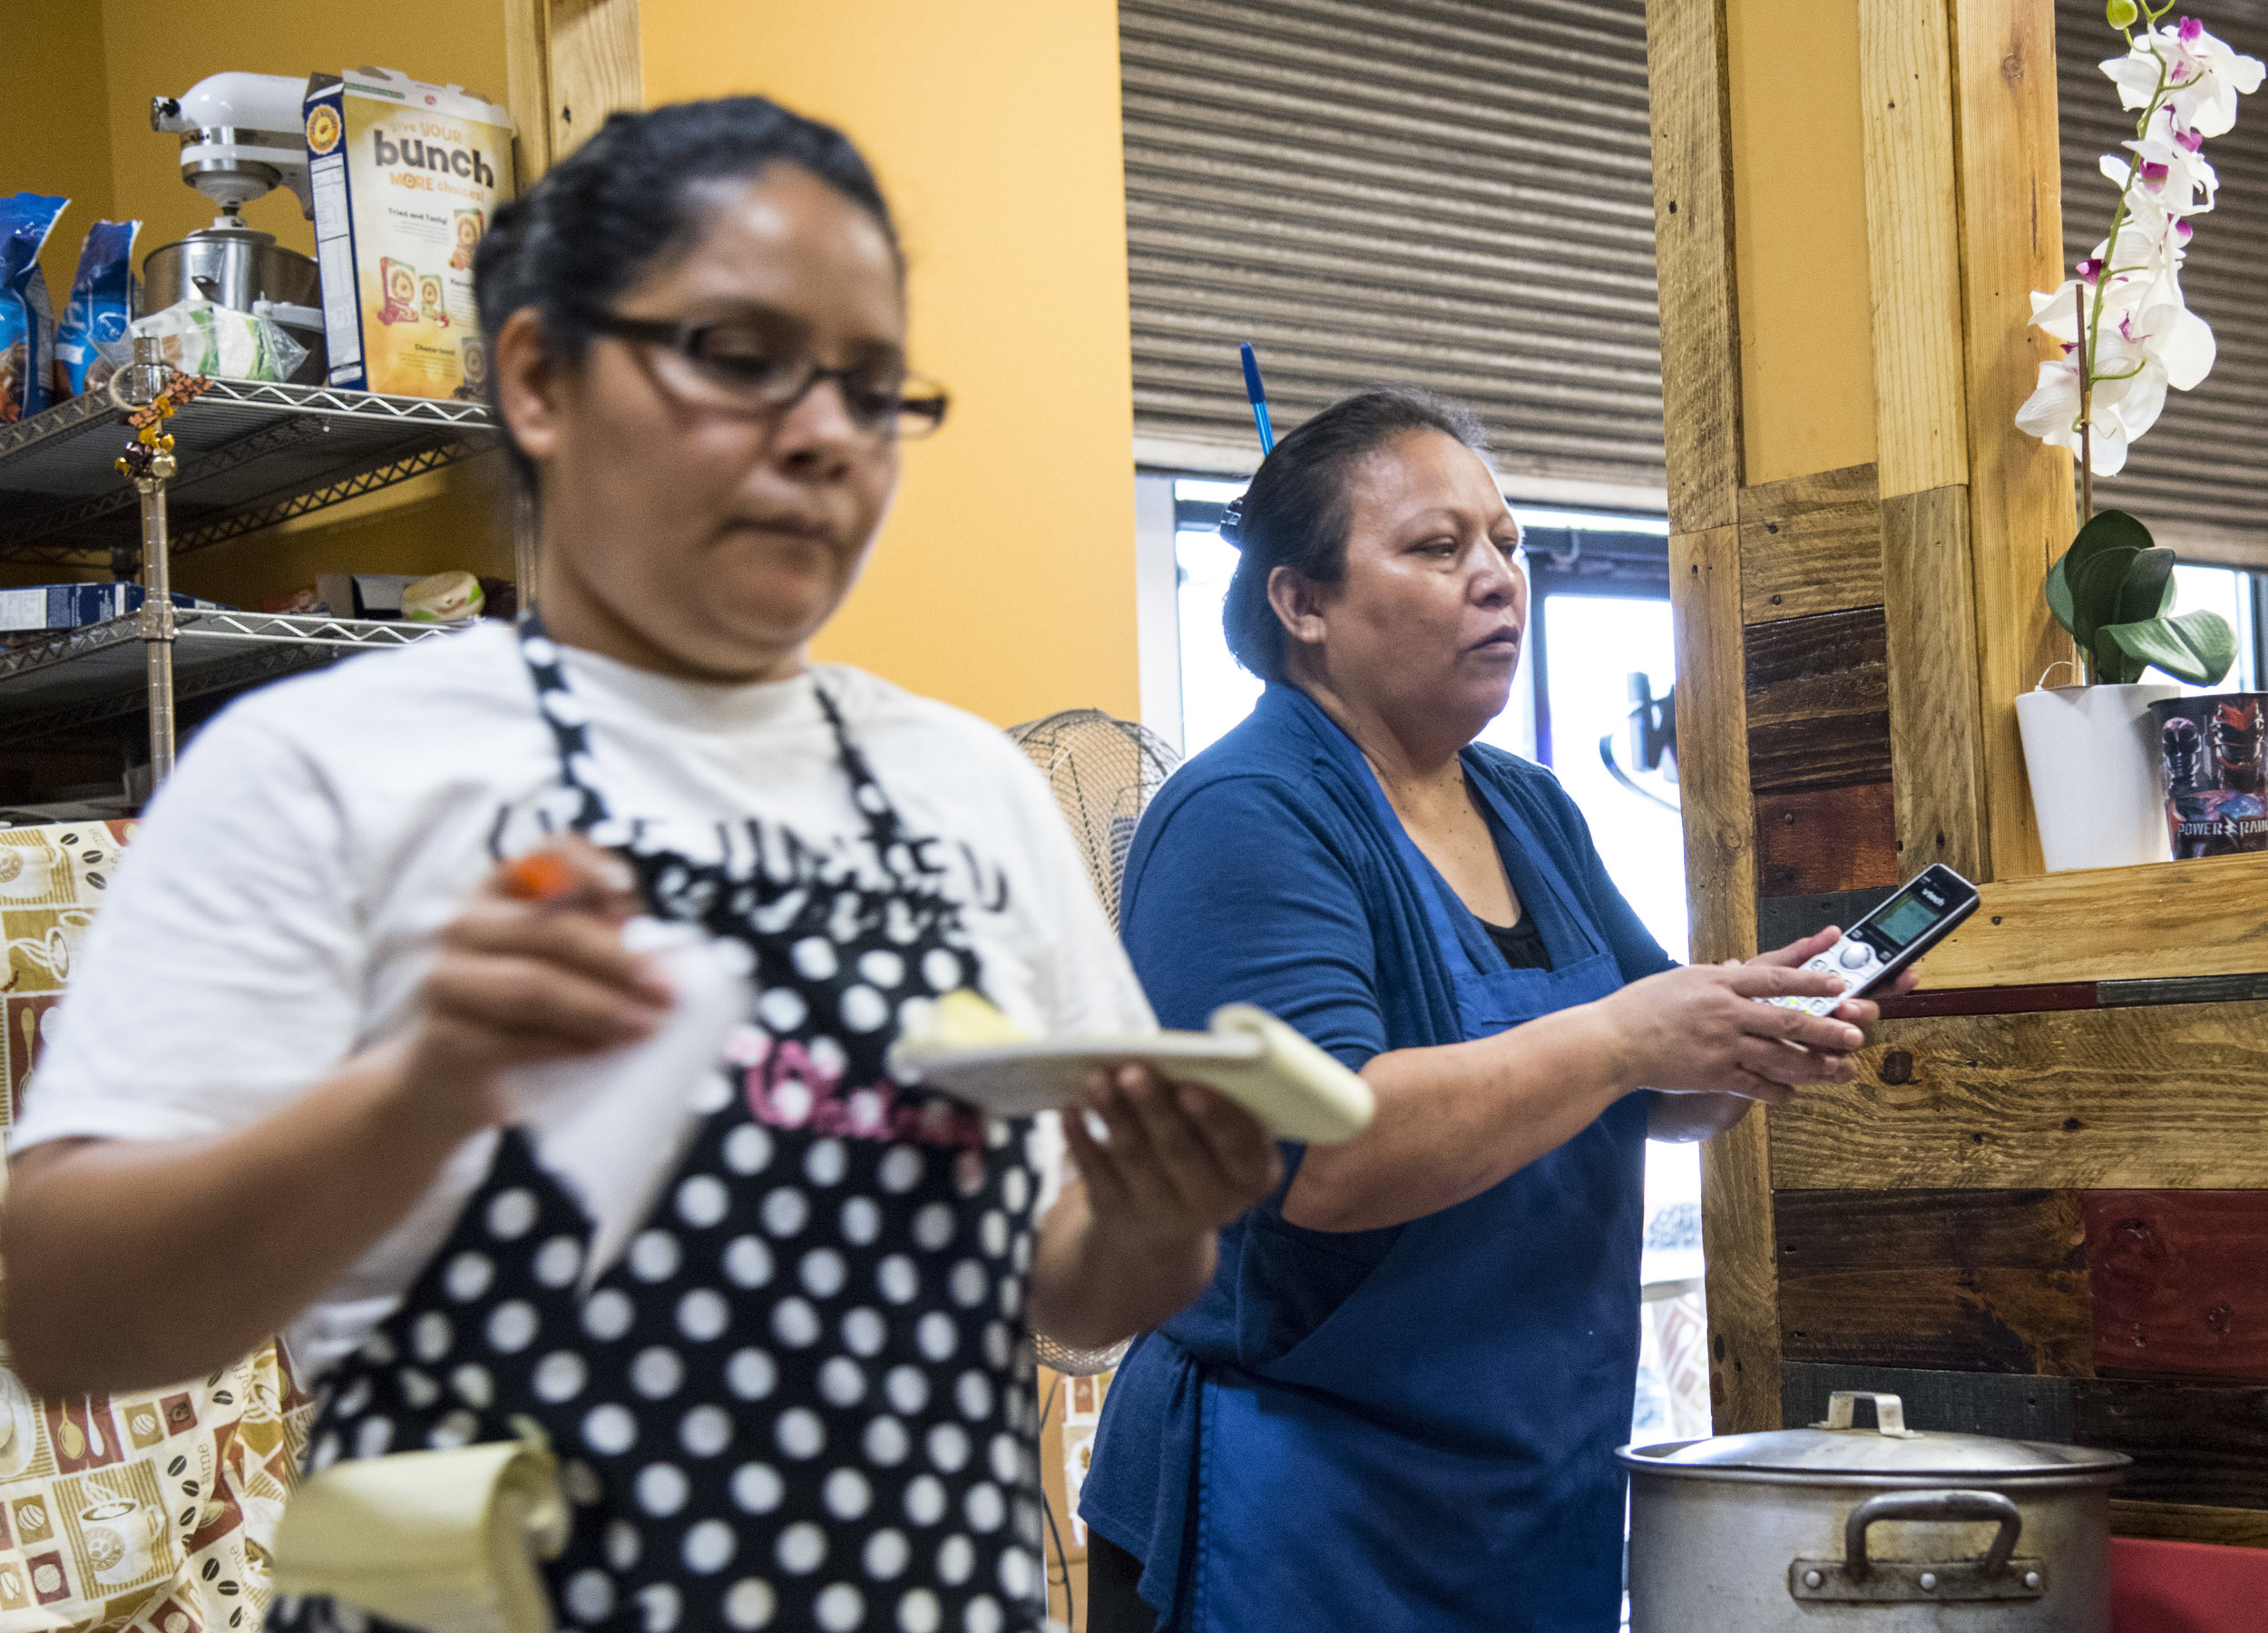 Irma Guillen, 49, finishes taking an order on the phone at La Perlita, the taquería where she volunteers her time. Guillen, her husband and their children are members of the church.